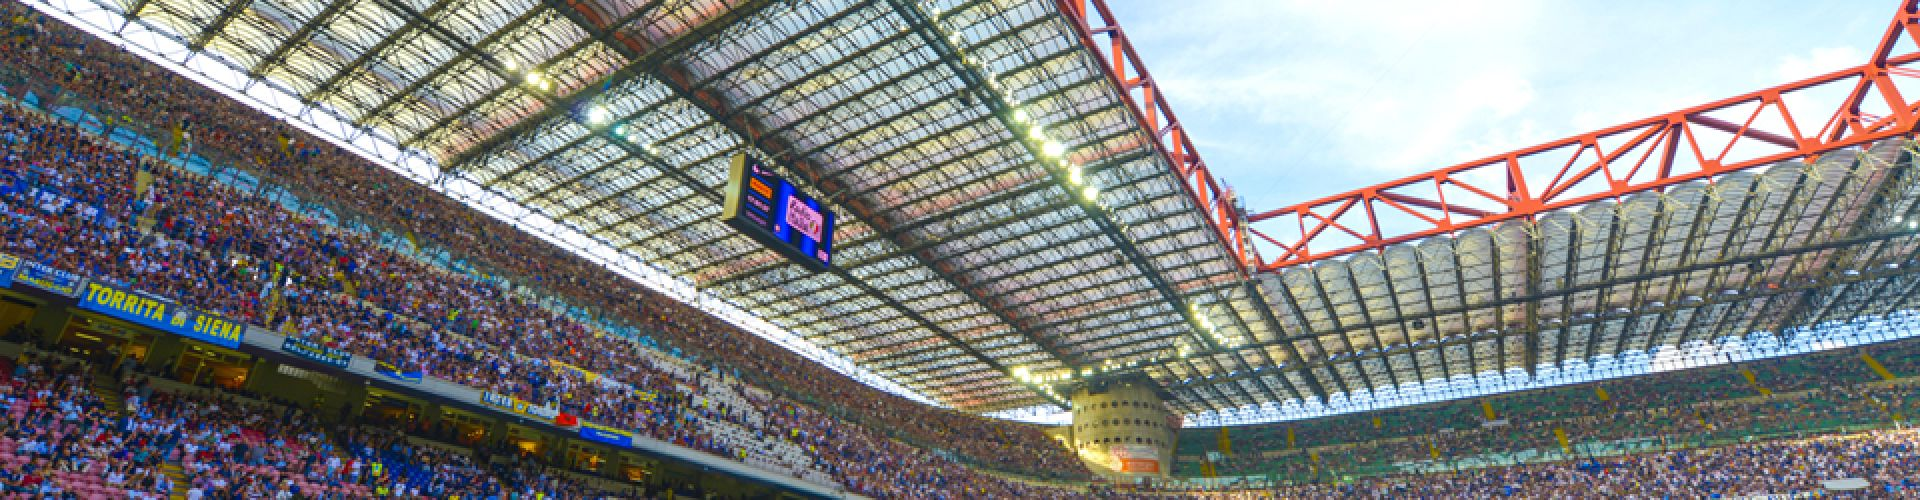 Mailand_Guiseppe_Meazza_Inter_Mailand